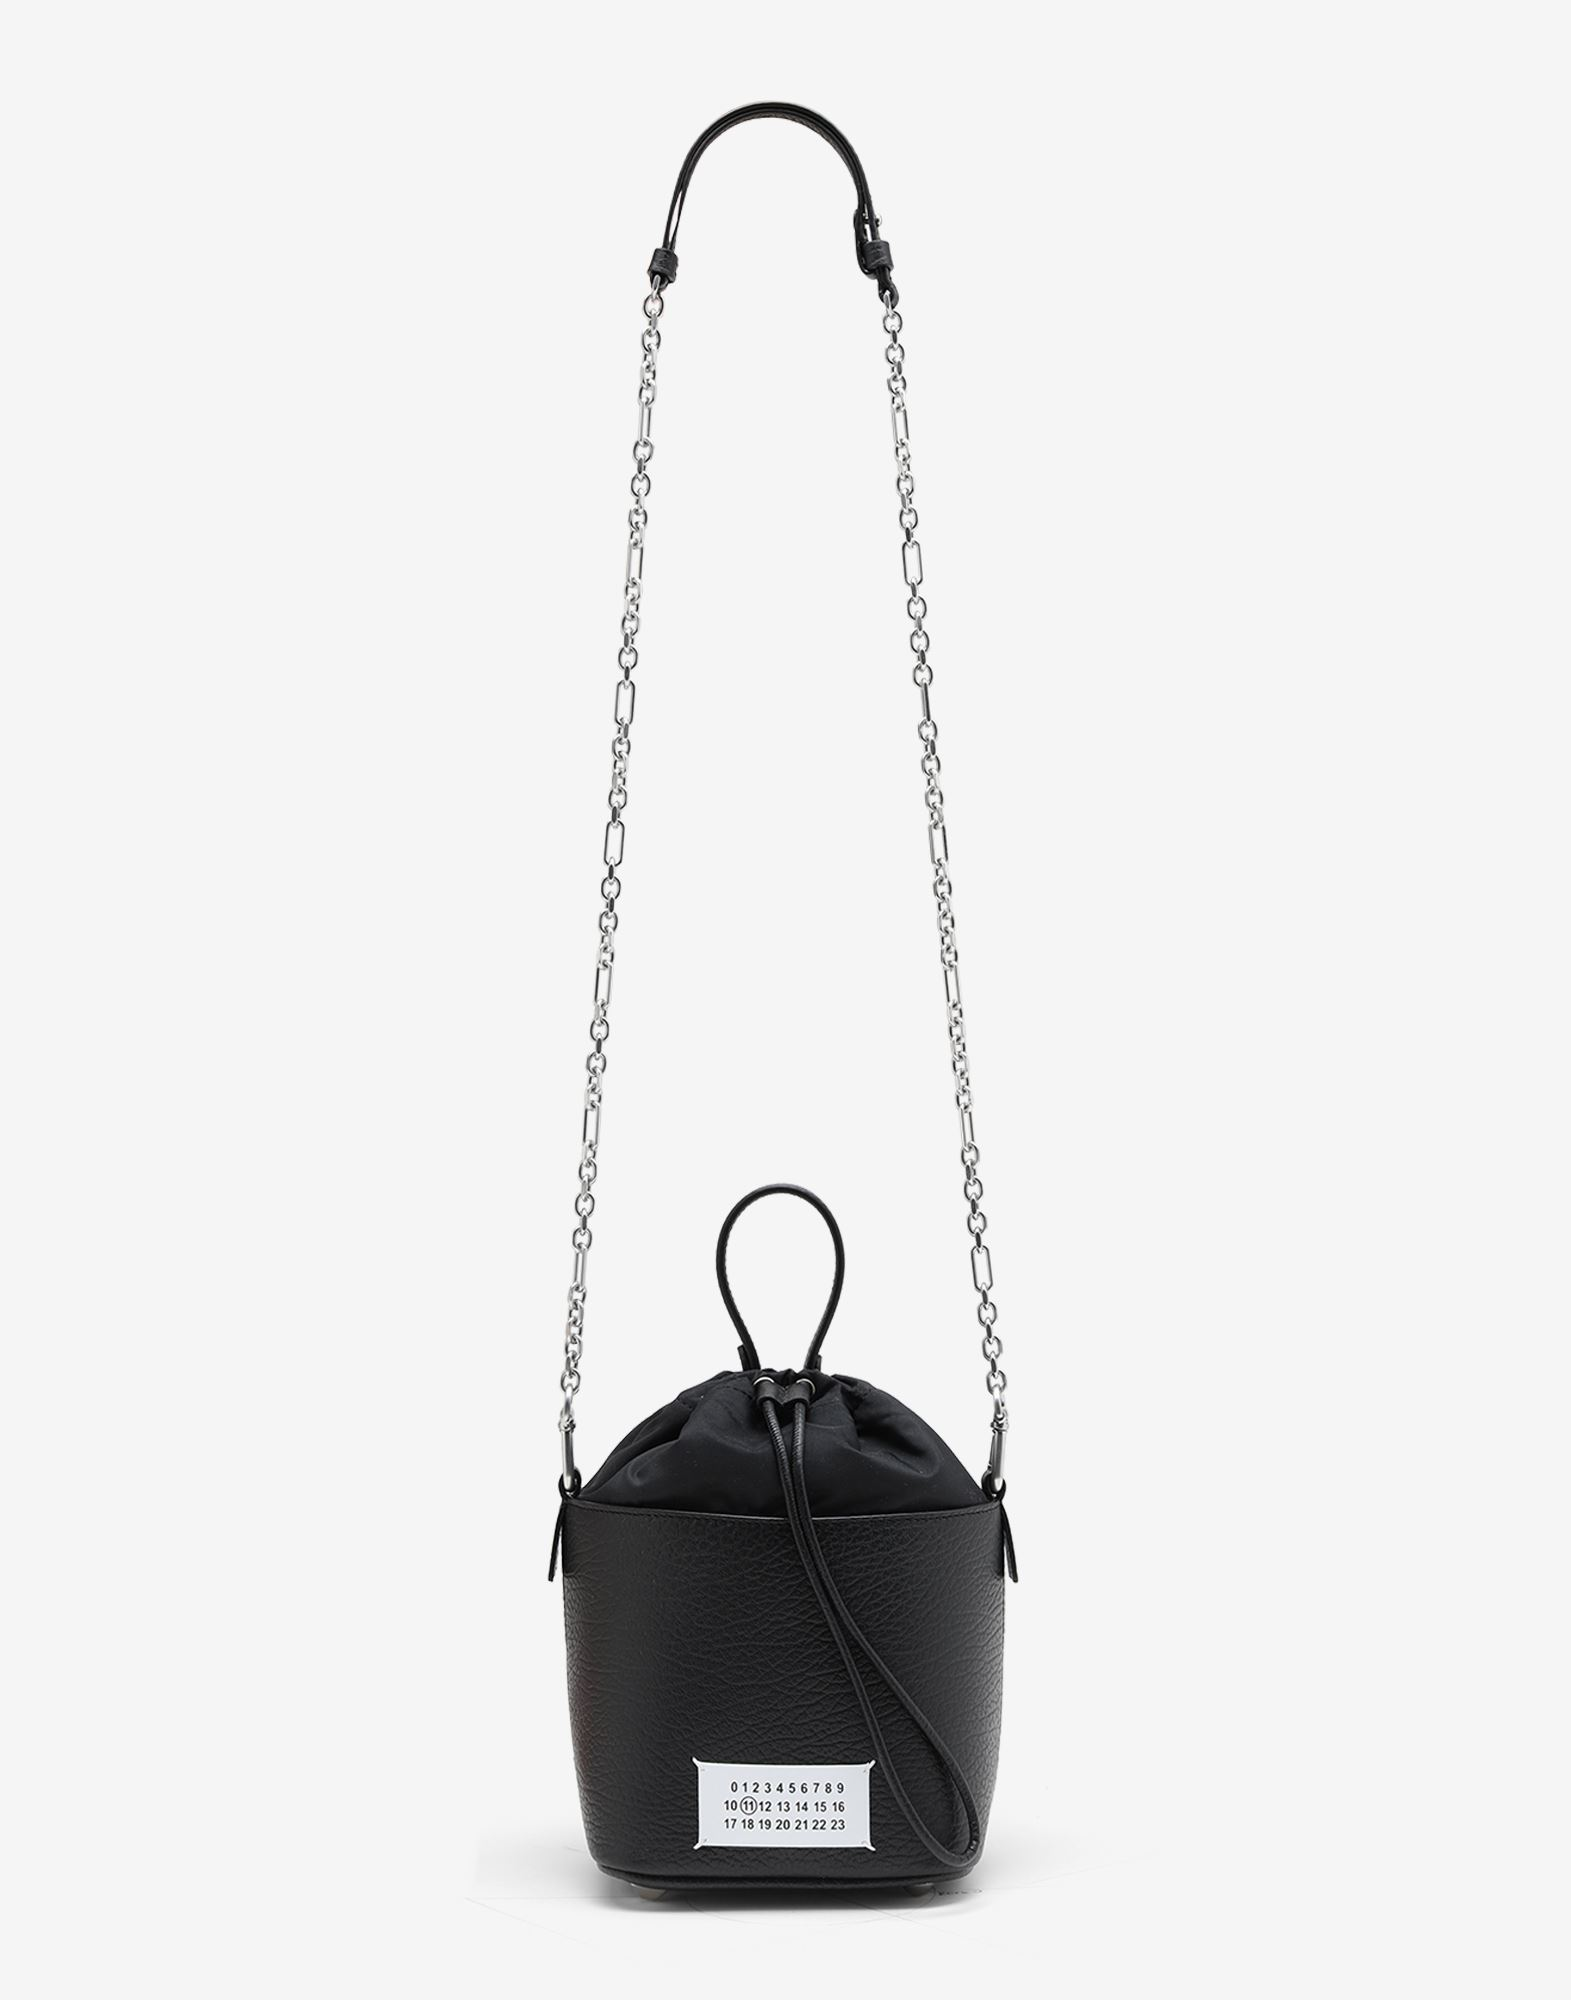 MAISON MARGIELA Textured leather bucket bag Shoulder bag Woman a